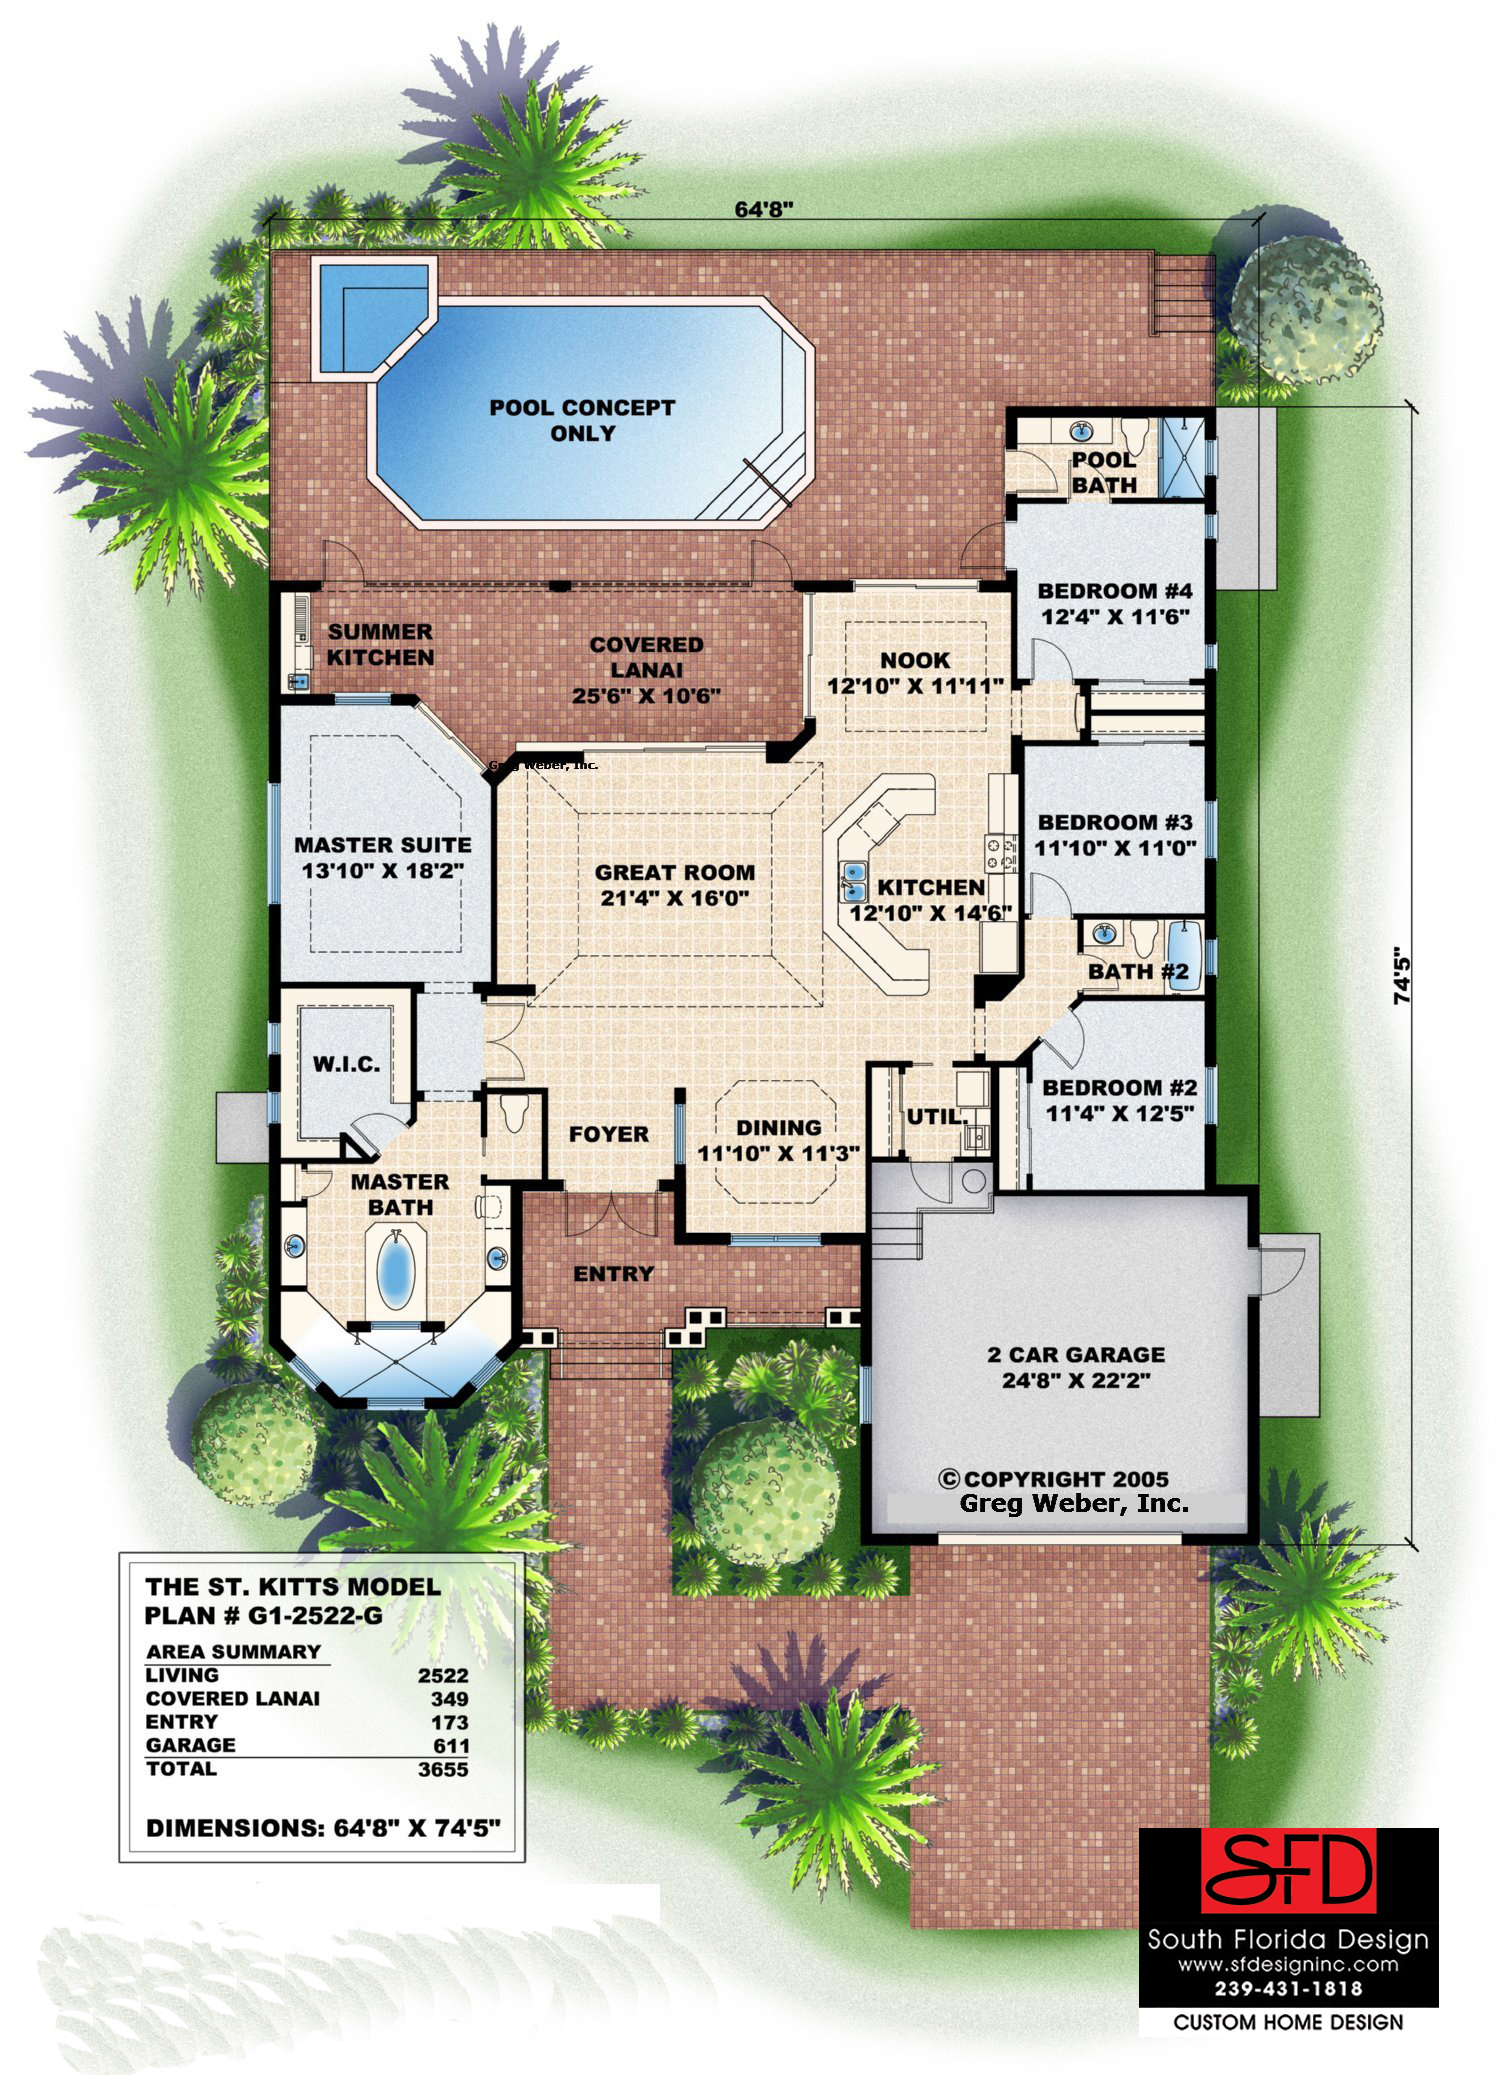 South florida designs tropical one story great room house for Great room floor plans single story